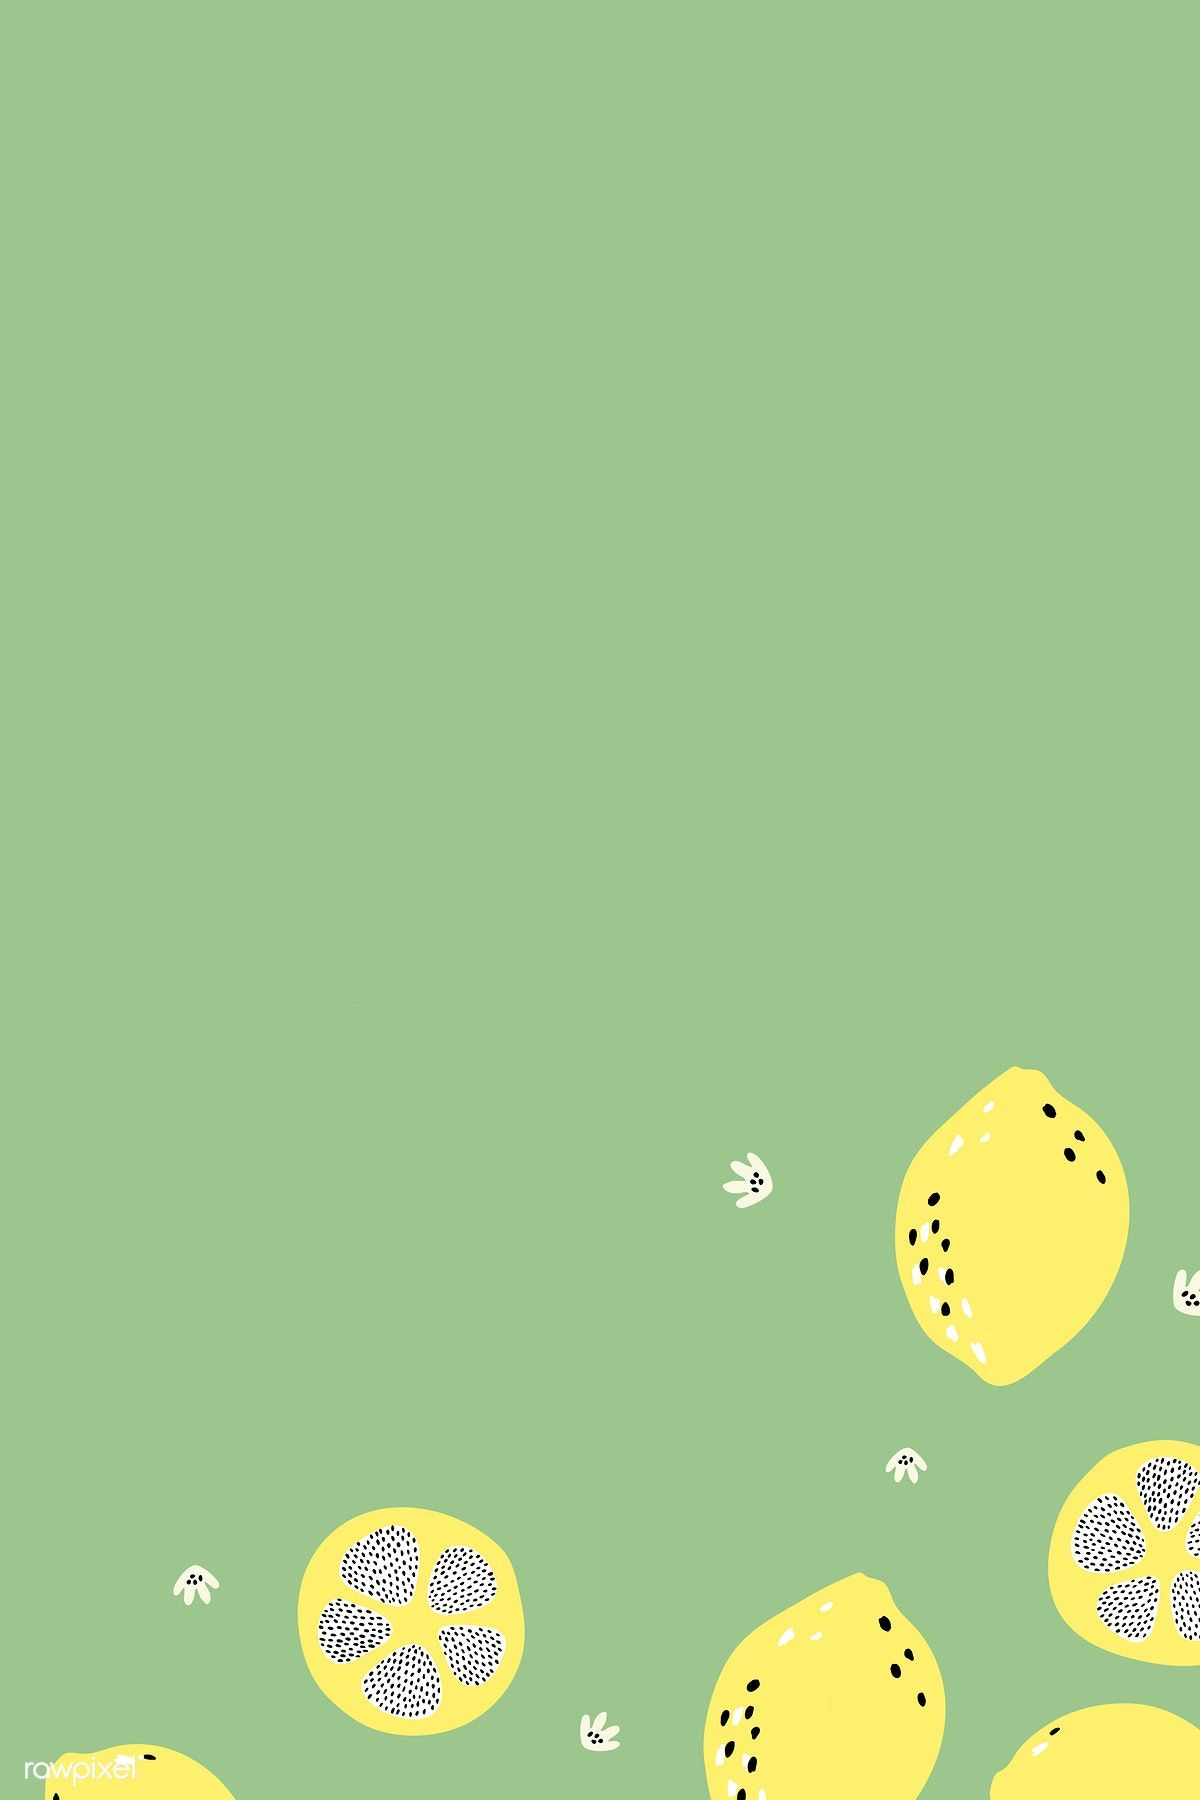 Download premium vector of Lemon on a green background vector 893024